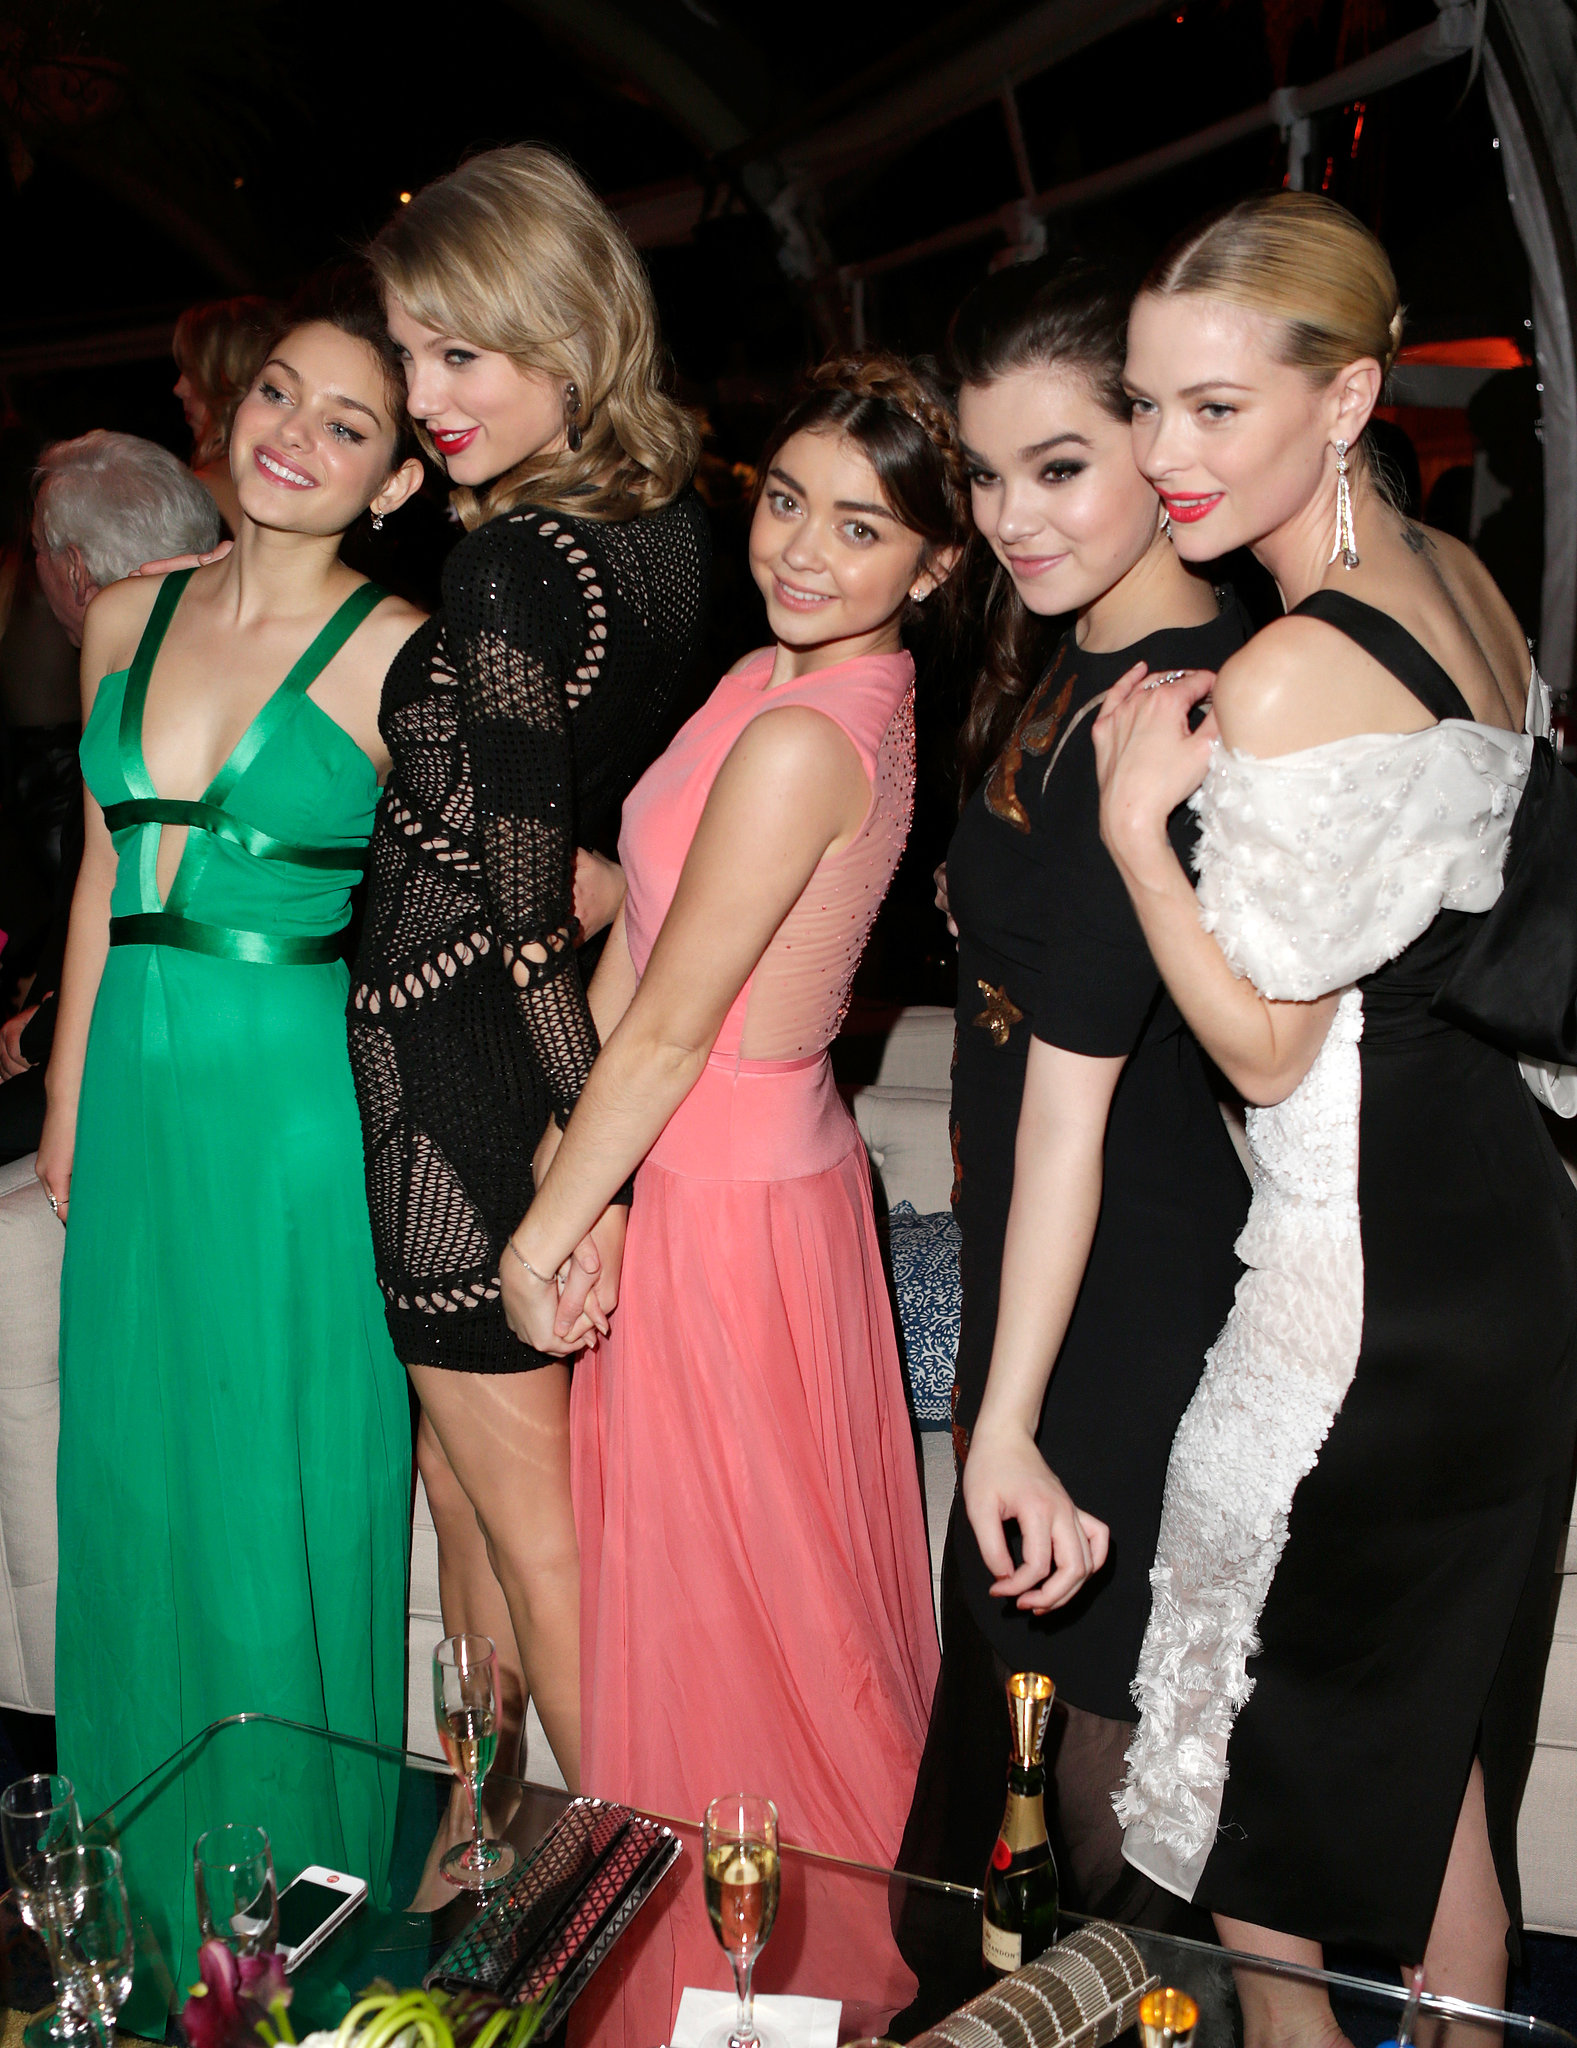 Odeya Rush, Taylor Swift, Sarah Hyland, Hailee Steinfeld, and Jaime King grouped up at The Weinstein Company's Golden Globes afterparty.